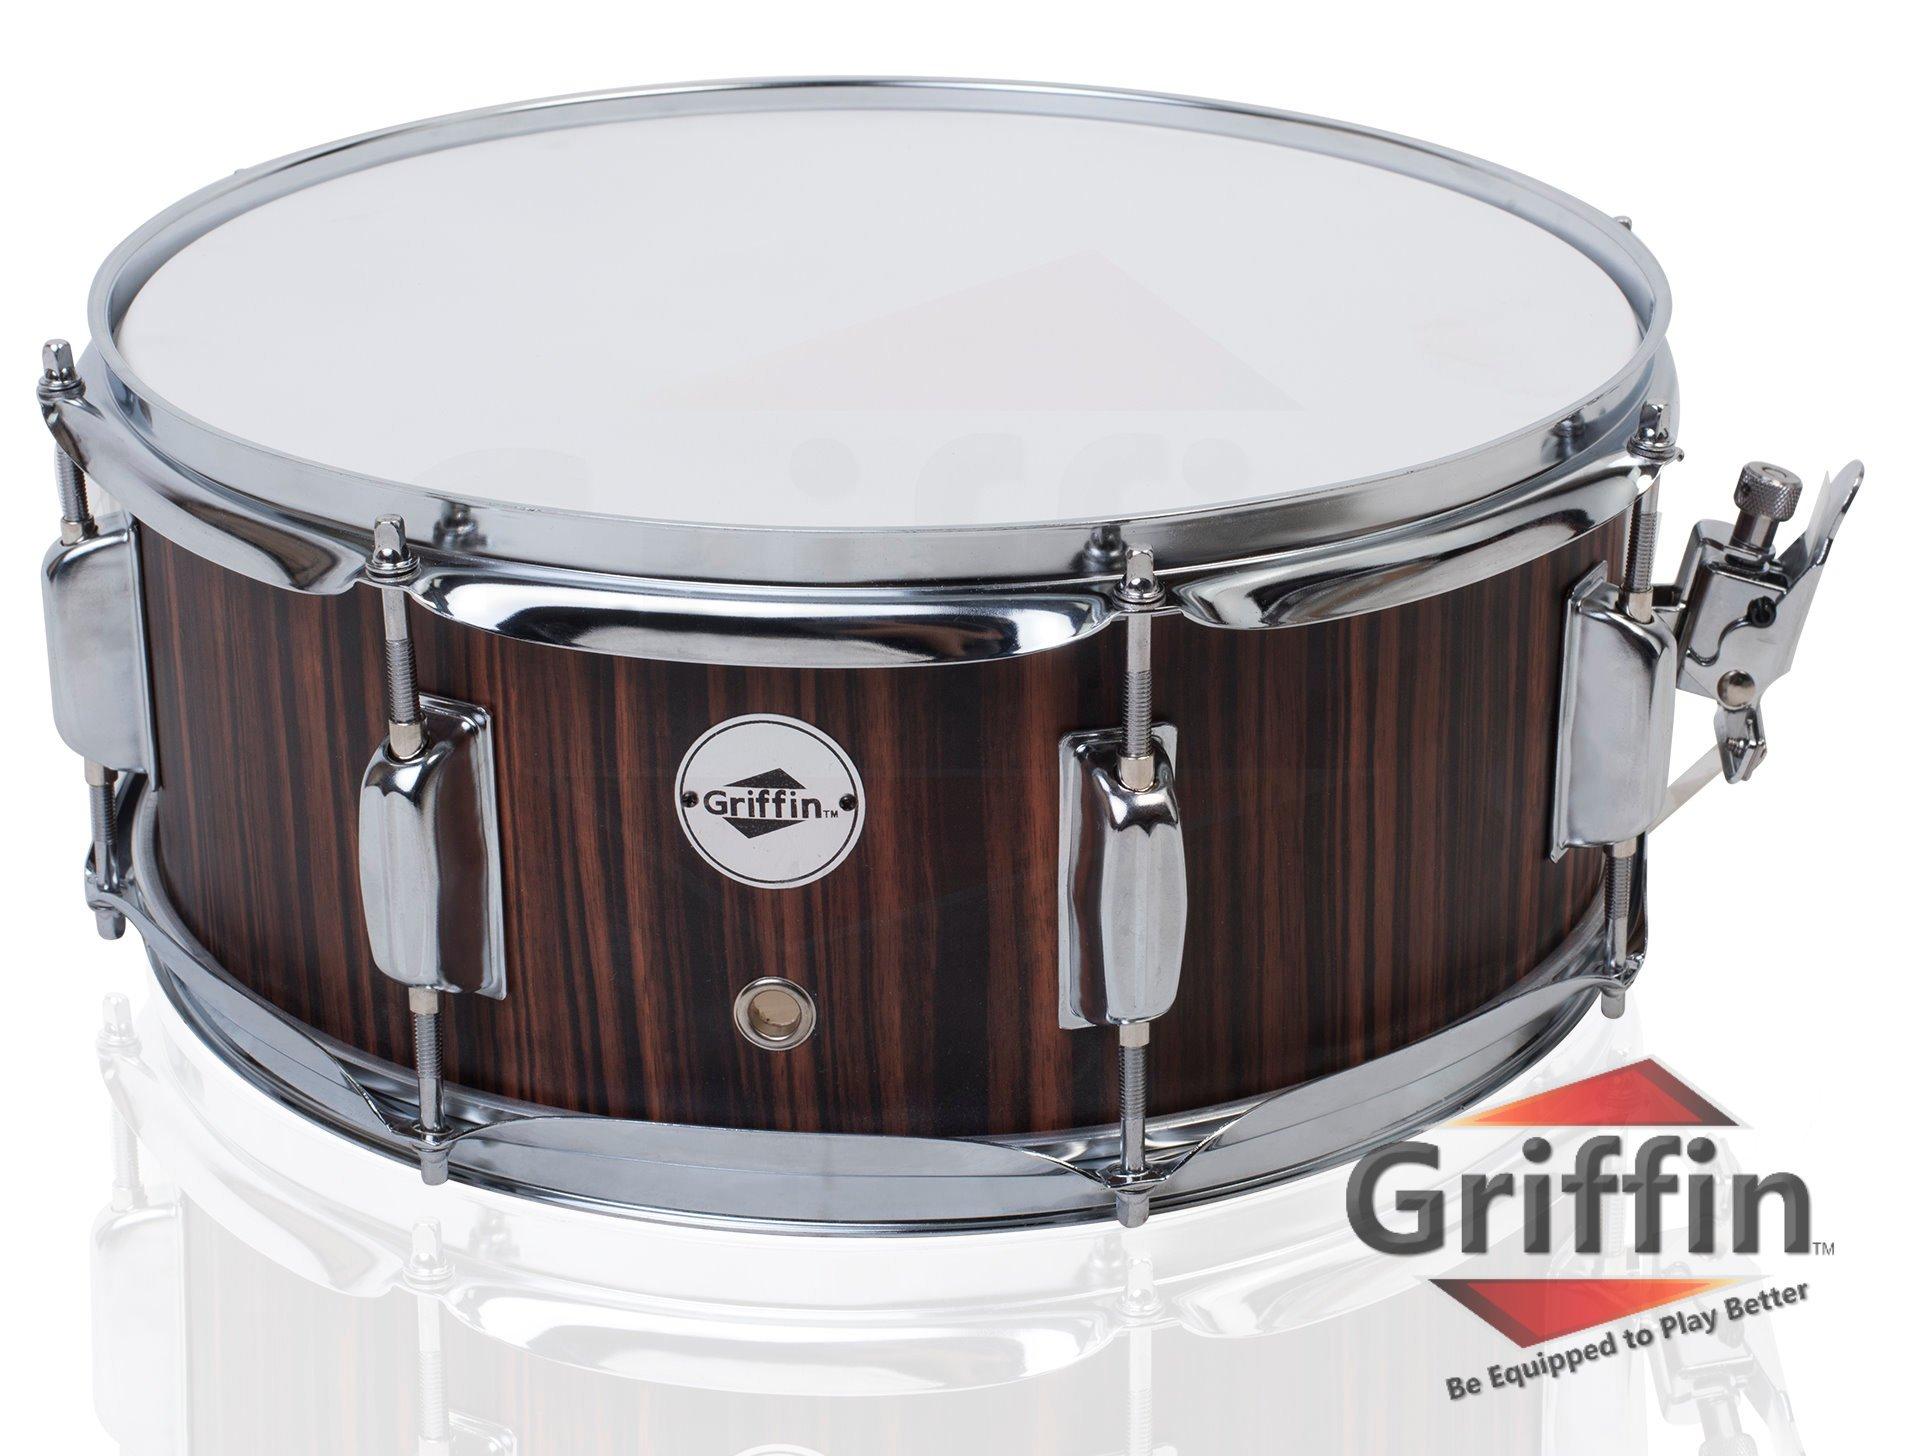 Snare Drum by Griffin | Black Hickory PVC Glossy Finish on Poplar Wood Shell 14'' x 5.5'' | Percussion Musical Instrument with Drummers Key for Students & Professionals | 8 Lugs & Deluxe Snare Strainer